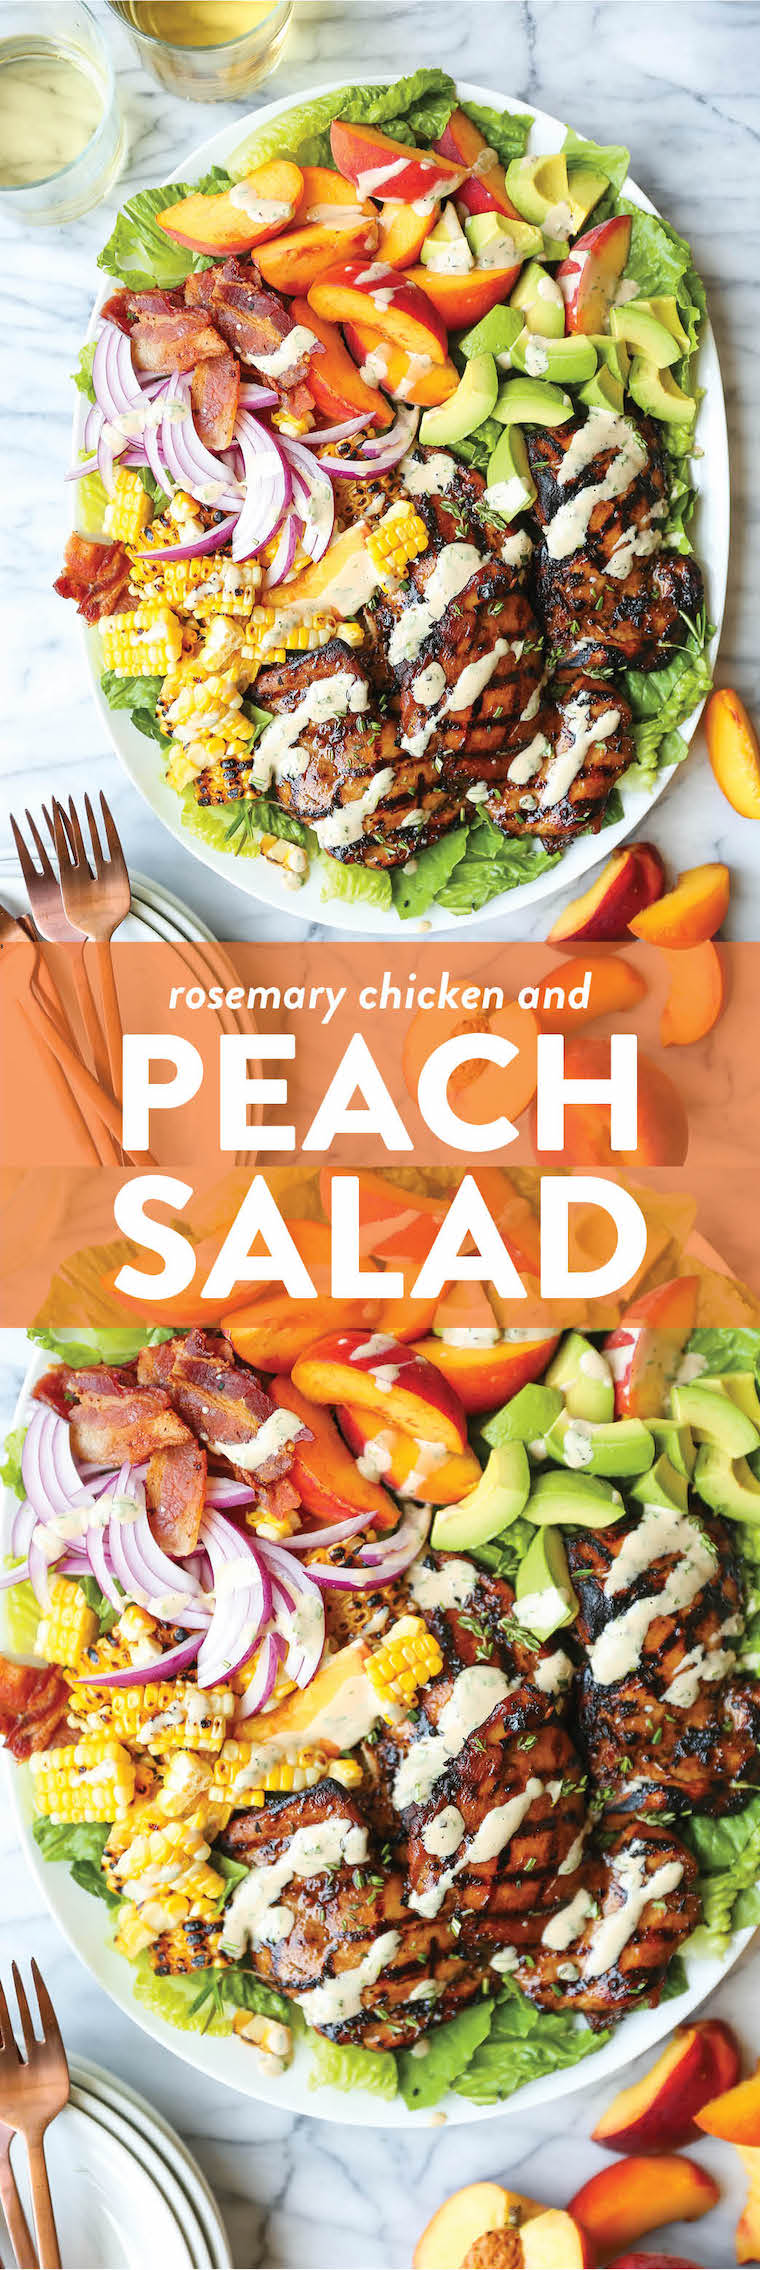 Rosemary Chicken and Peach Salad - Peaches slices, grilled rosemary-thyme chicken, charred corn kernels + crisp bacon with the creamiest balsamic dressing!